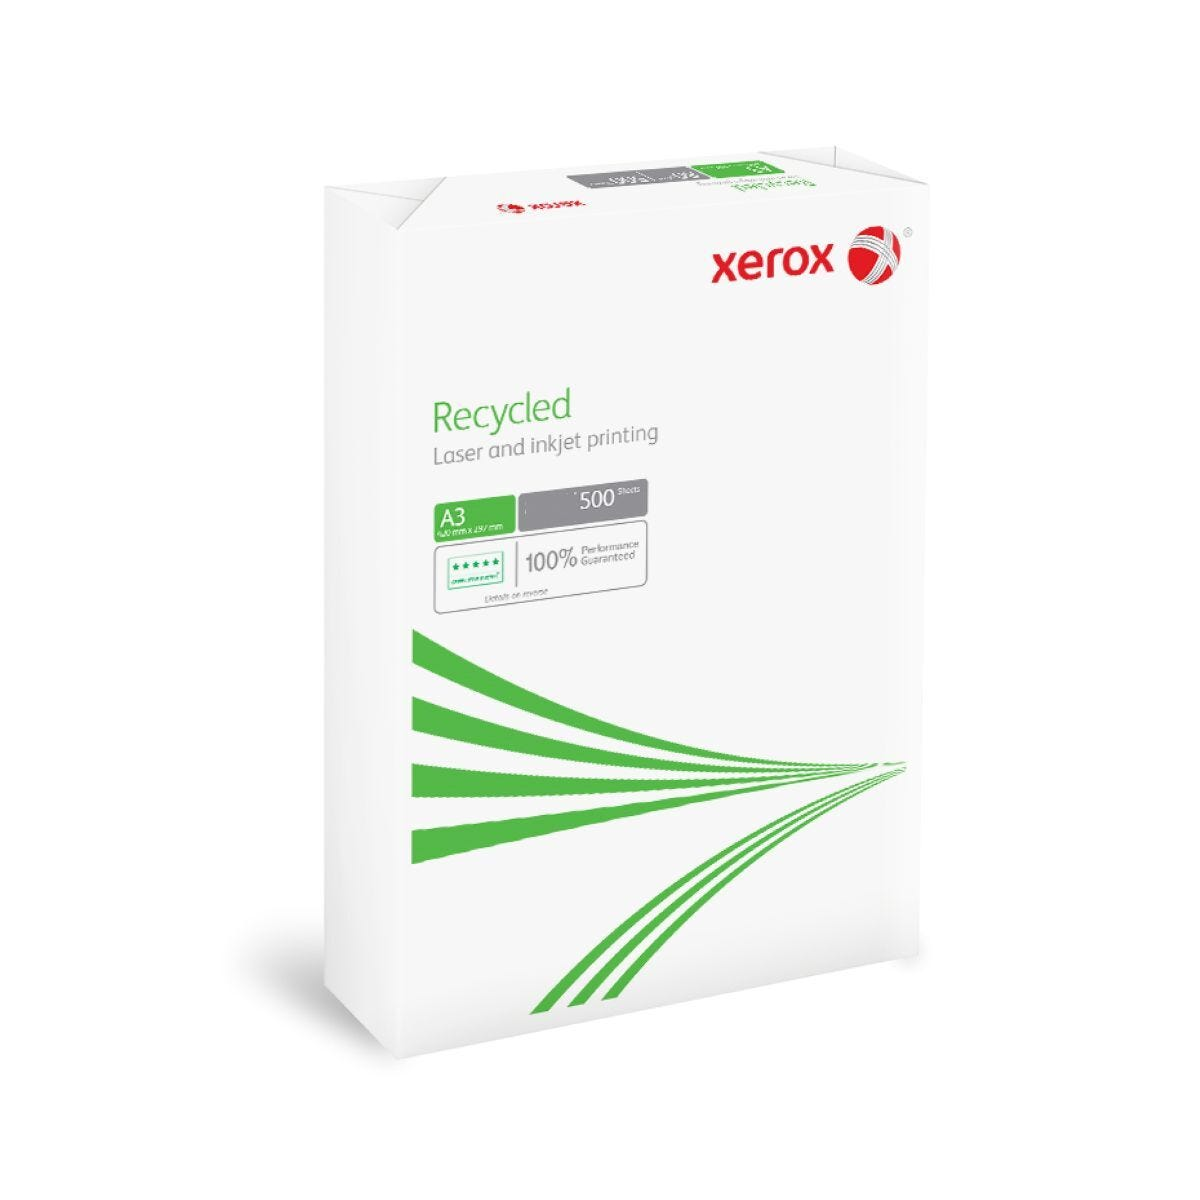 Xerox Recycled A3 Paper 80gsm Ream